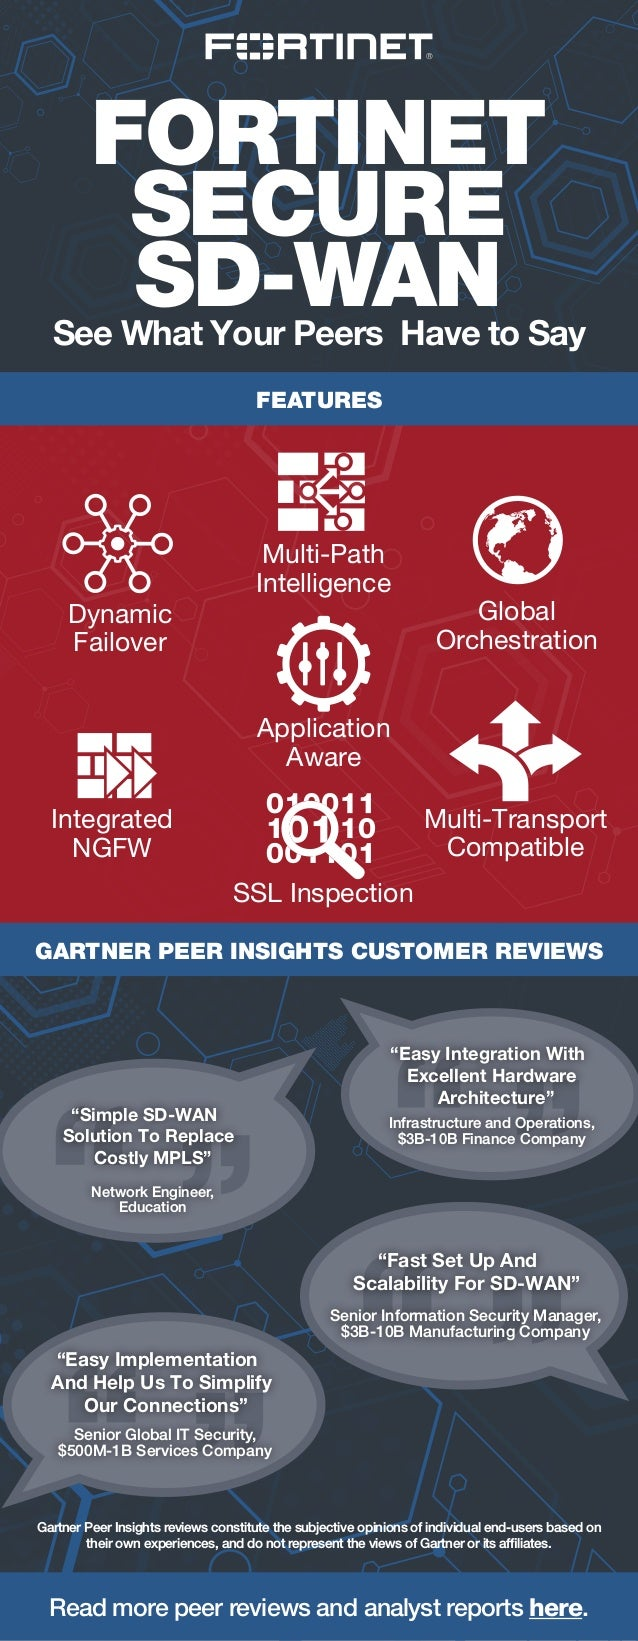 Gartner Peer Insights reviews constitute the subjective opinions of individual end-users based on their own experiences, a...